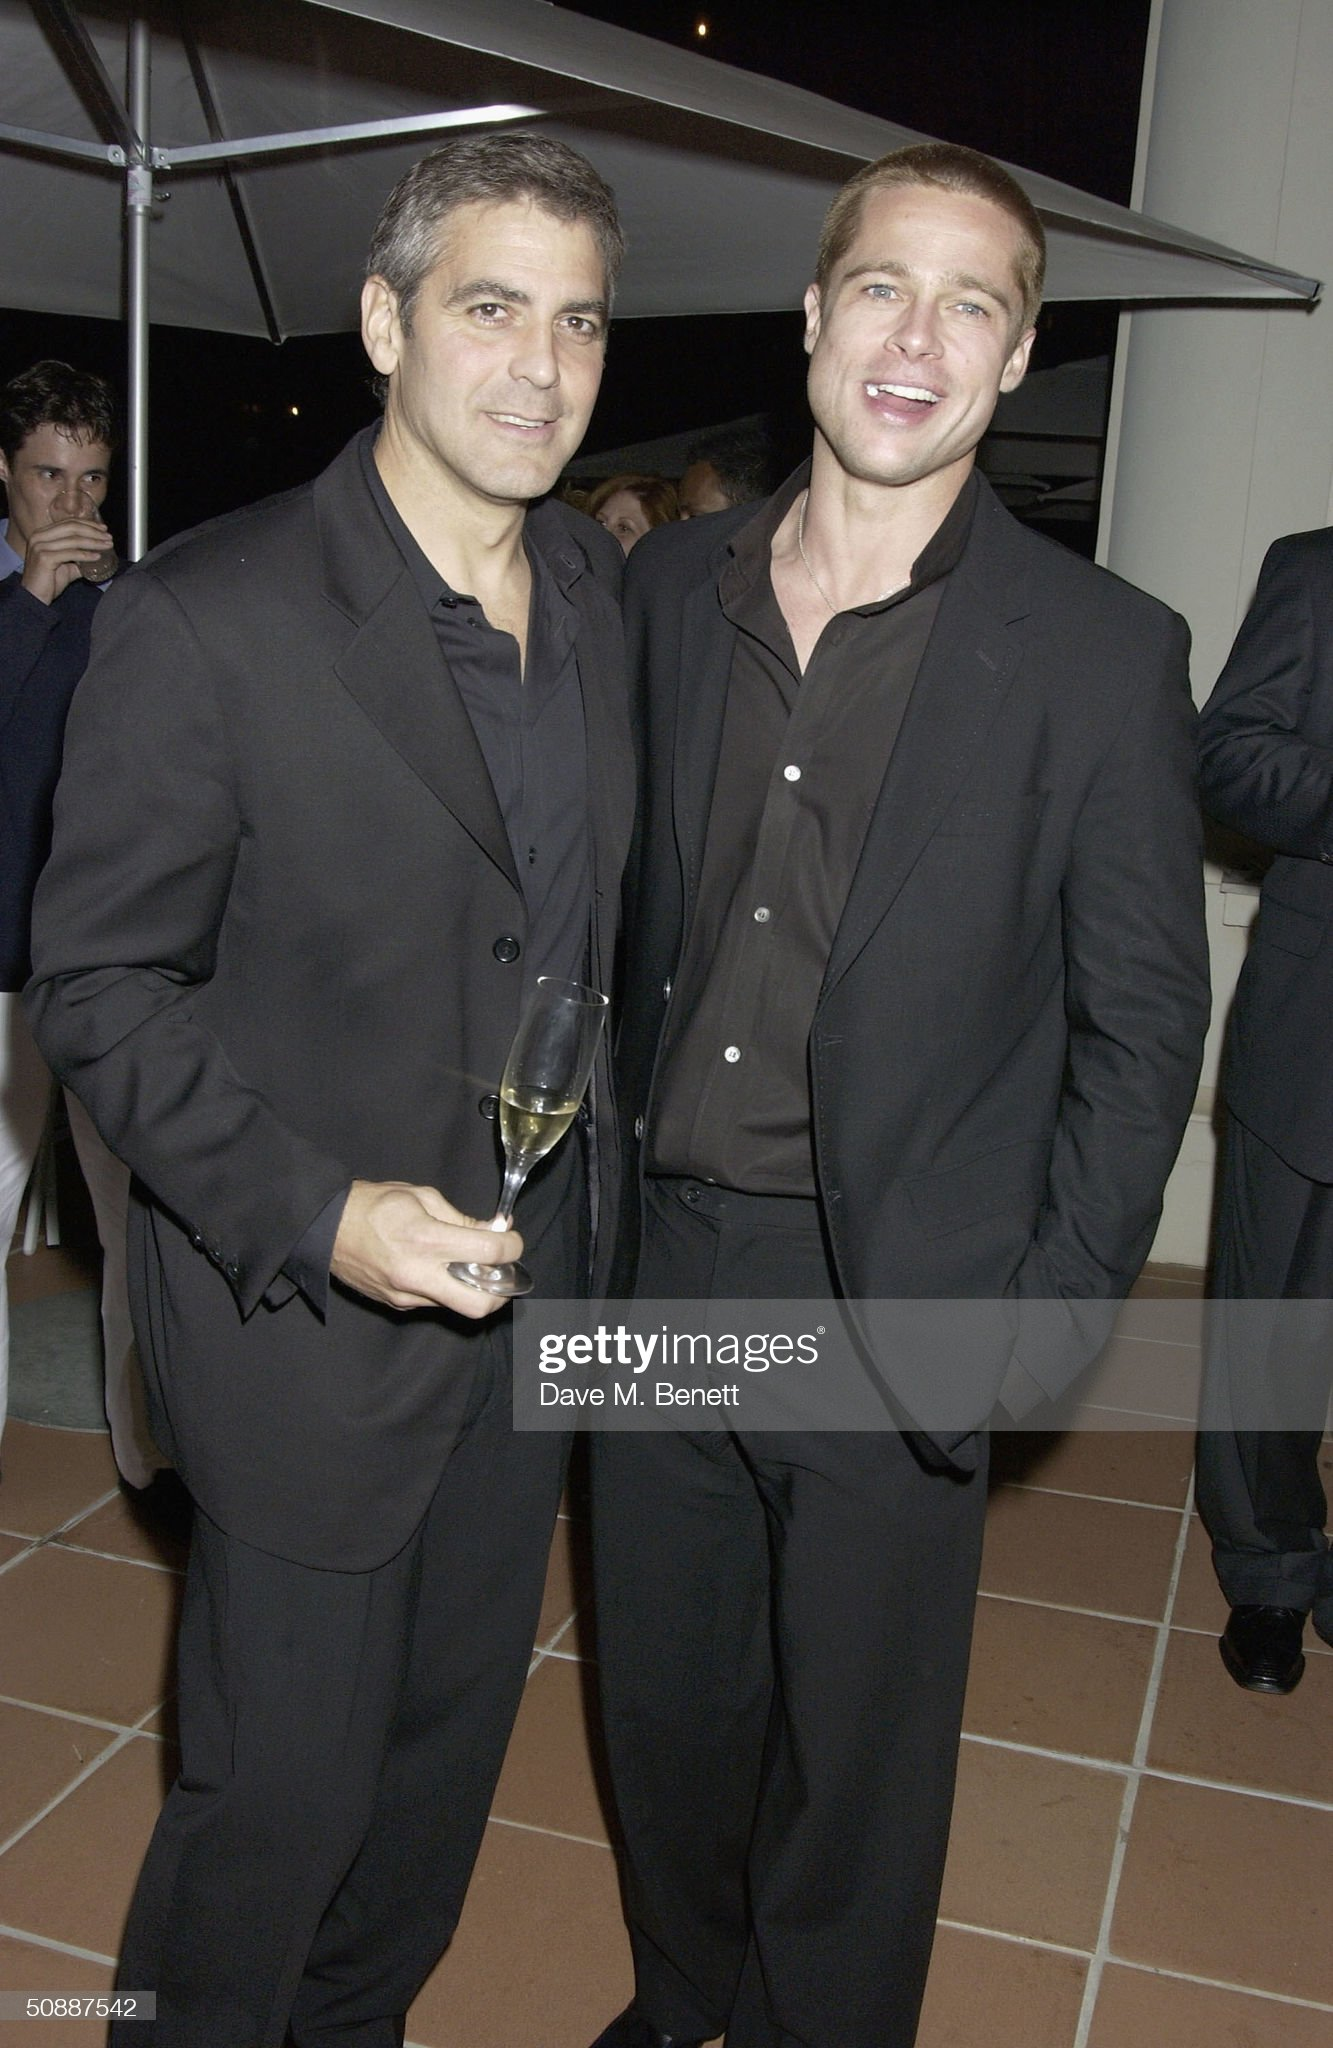 ¿Cuánto mide George Clooney? - Altura - Real height Actors-brad-pitt-george-clooney-attend-oceans12-dinner-at-karl-villa-picture-id50887542?s=2048x2048